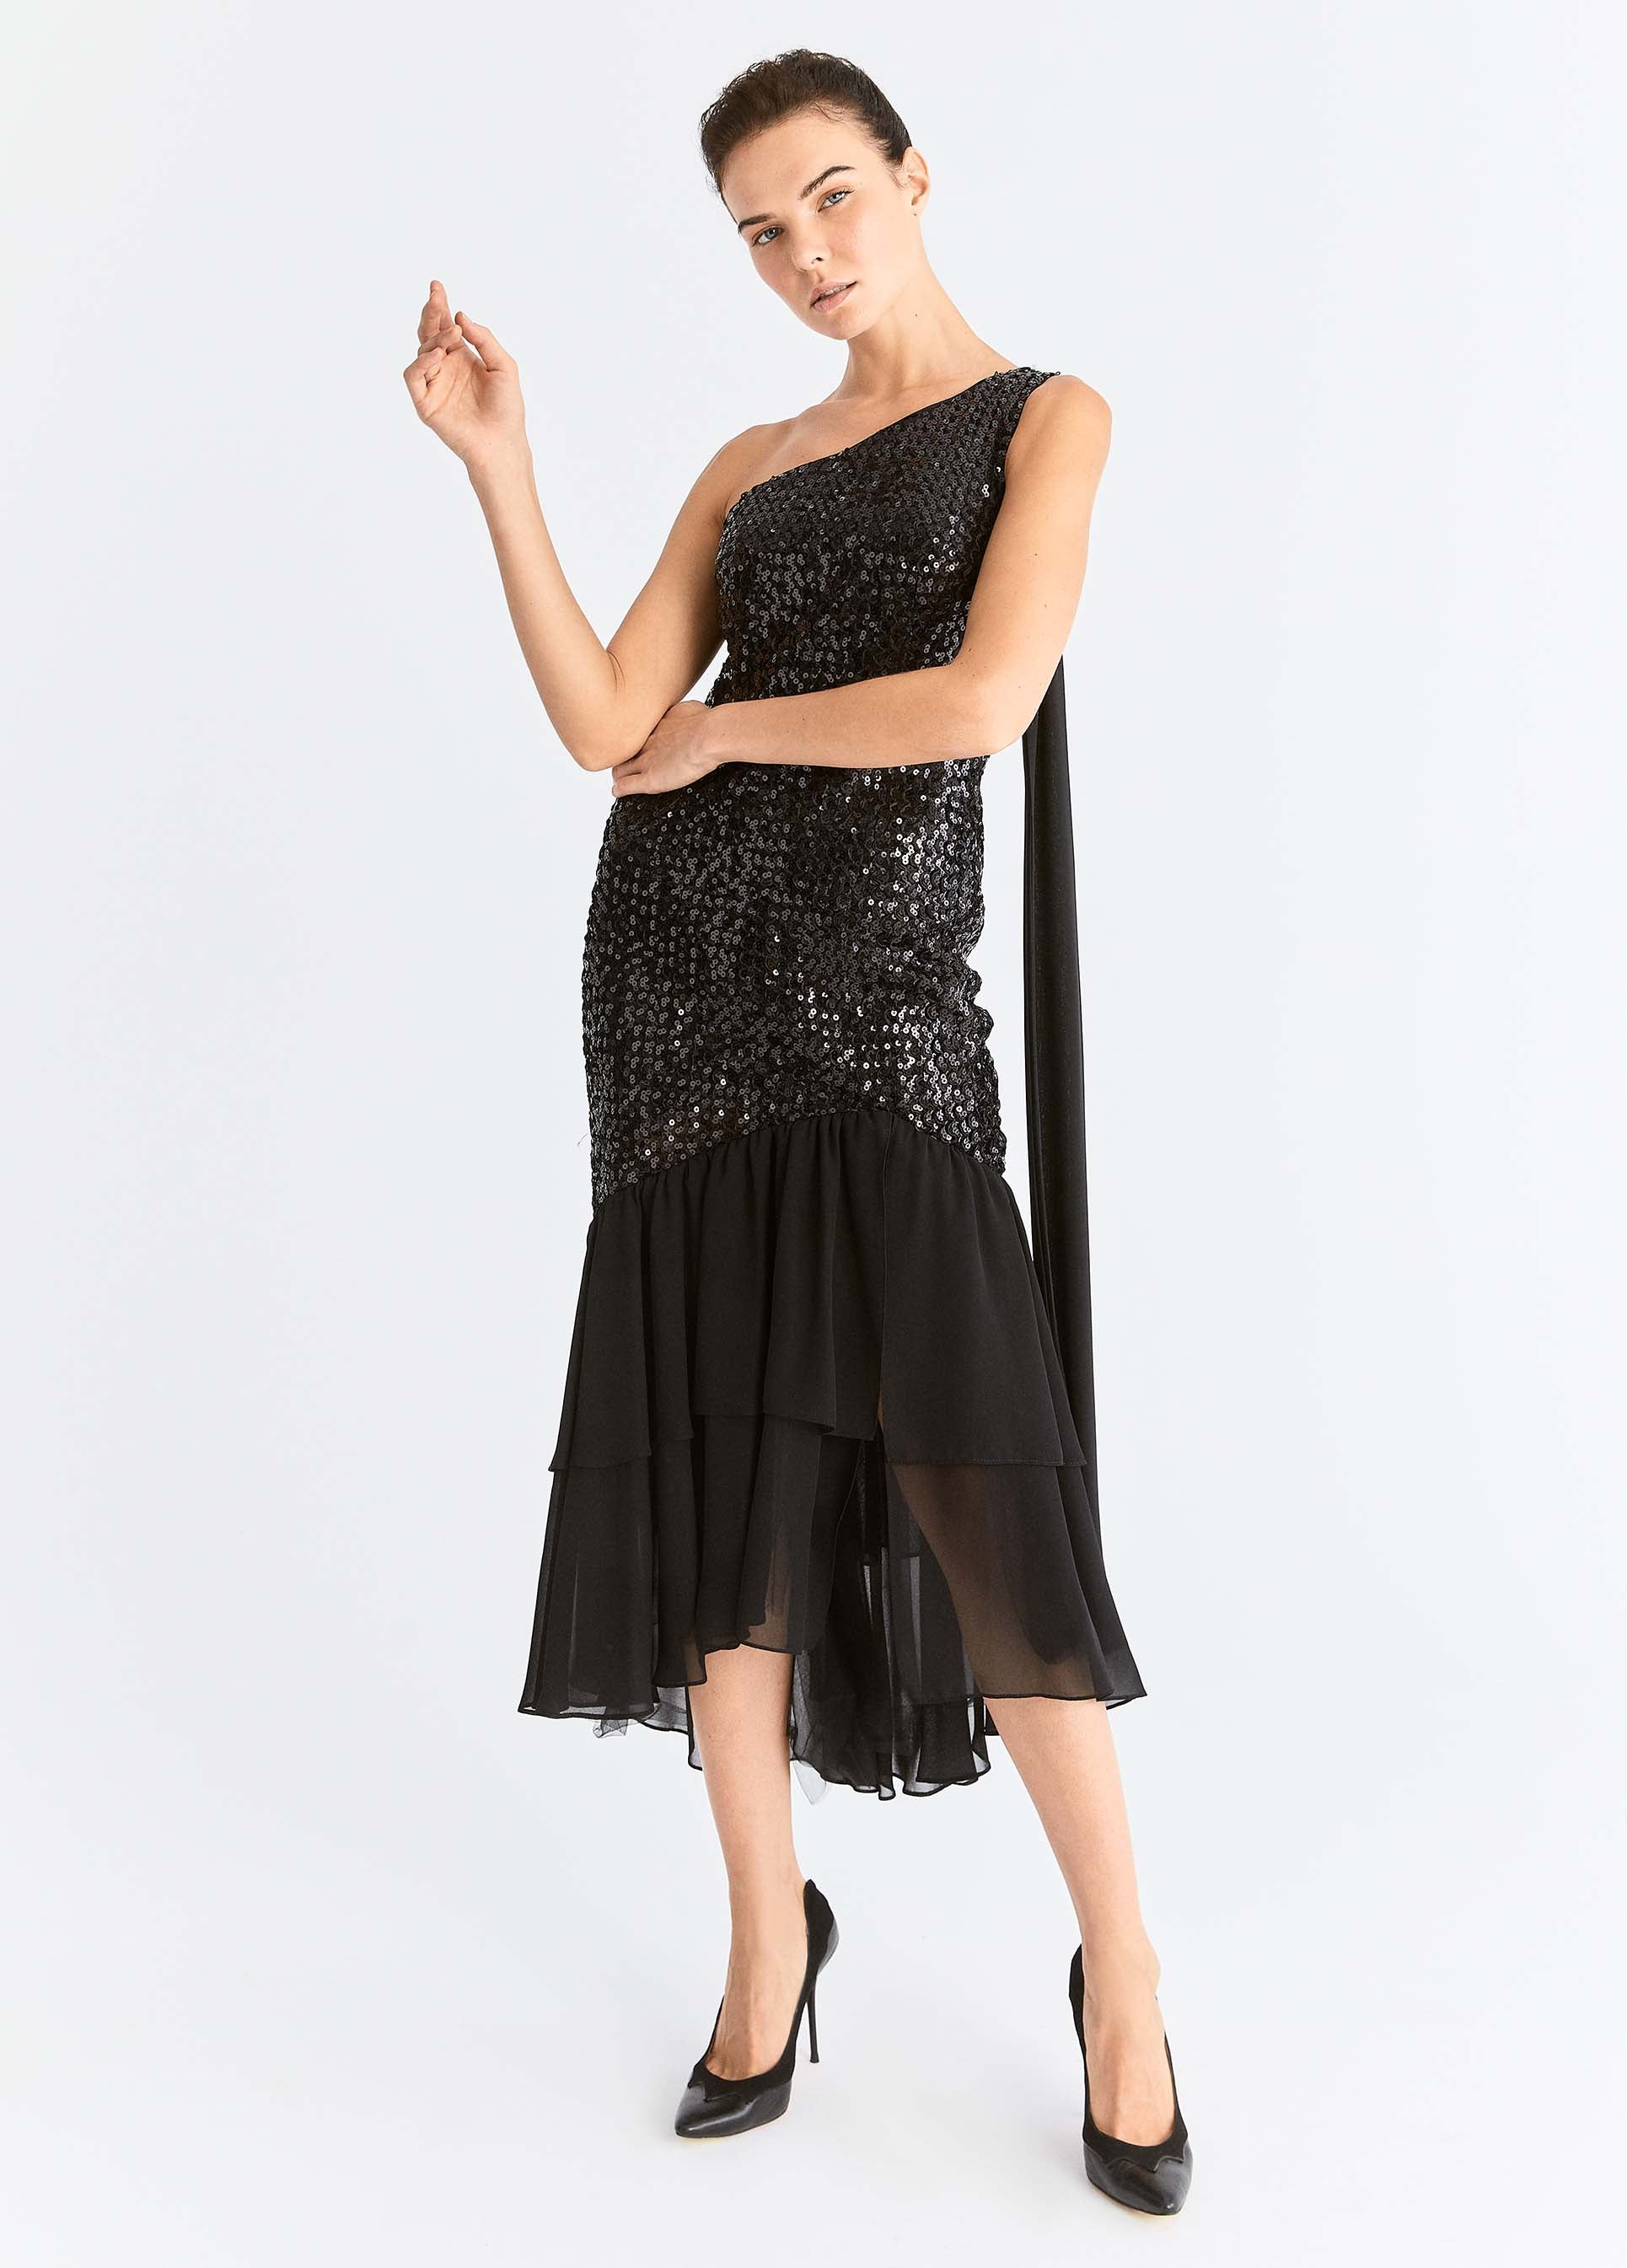 ROMAN USA-Asymmetrical Sequin Flounce Trim Dress-- [BLACK]